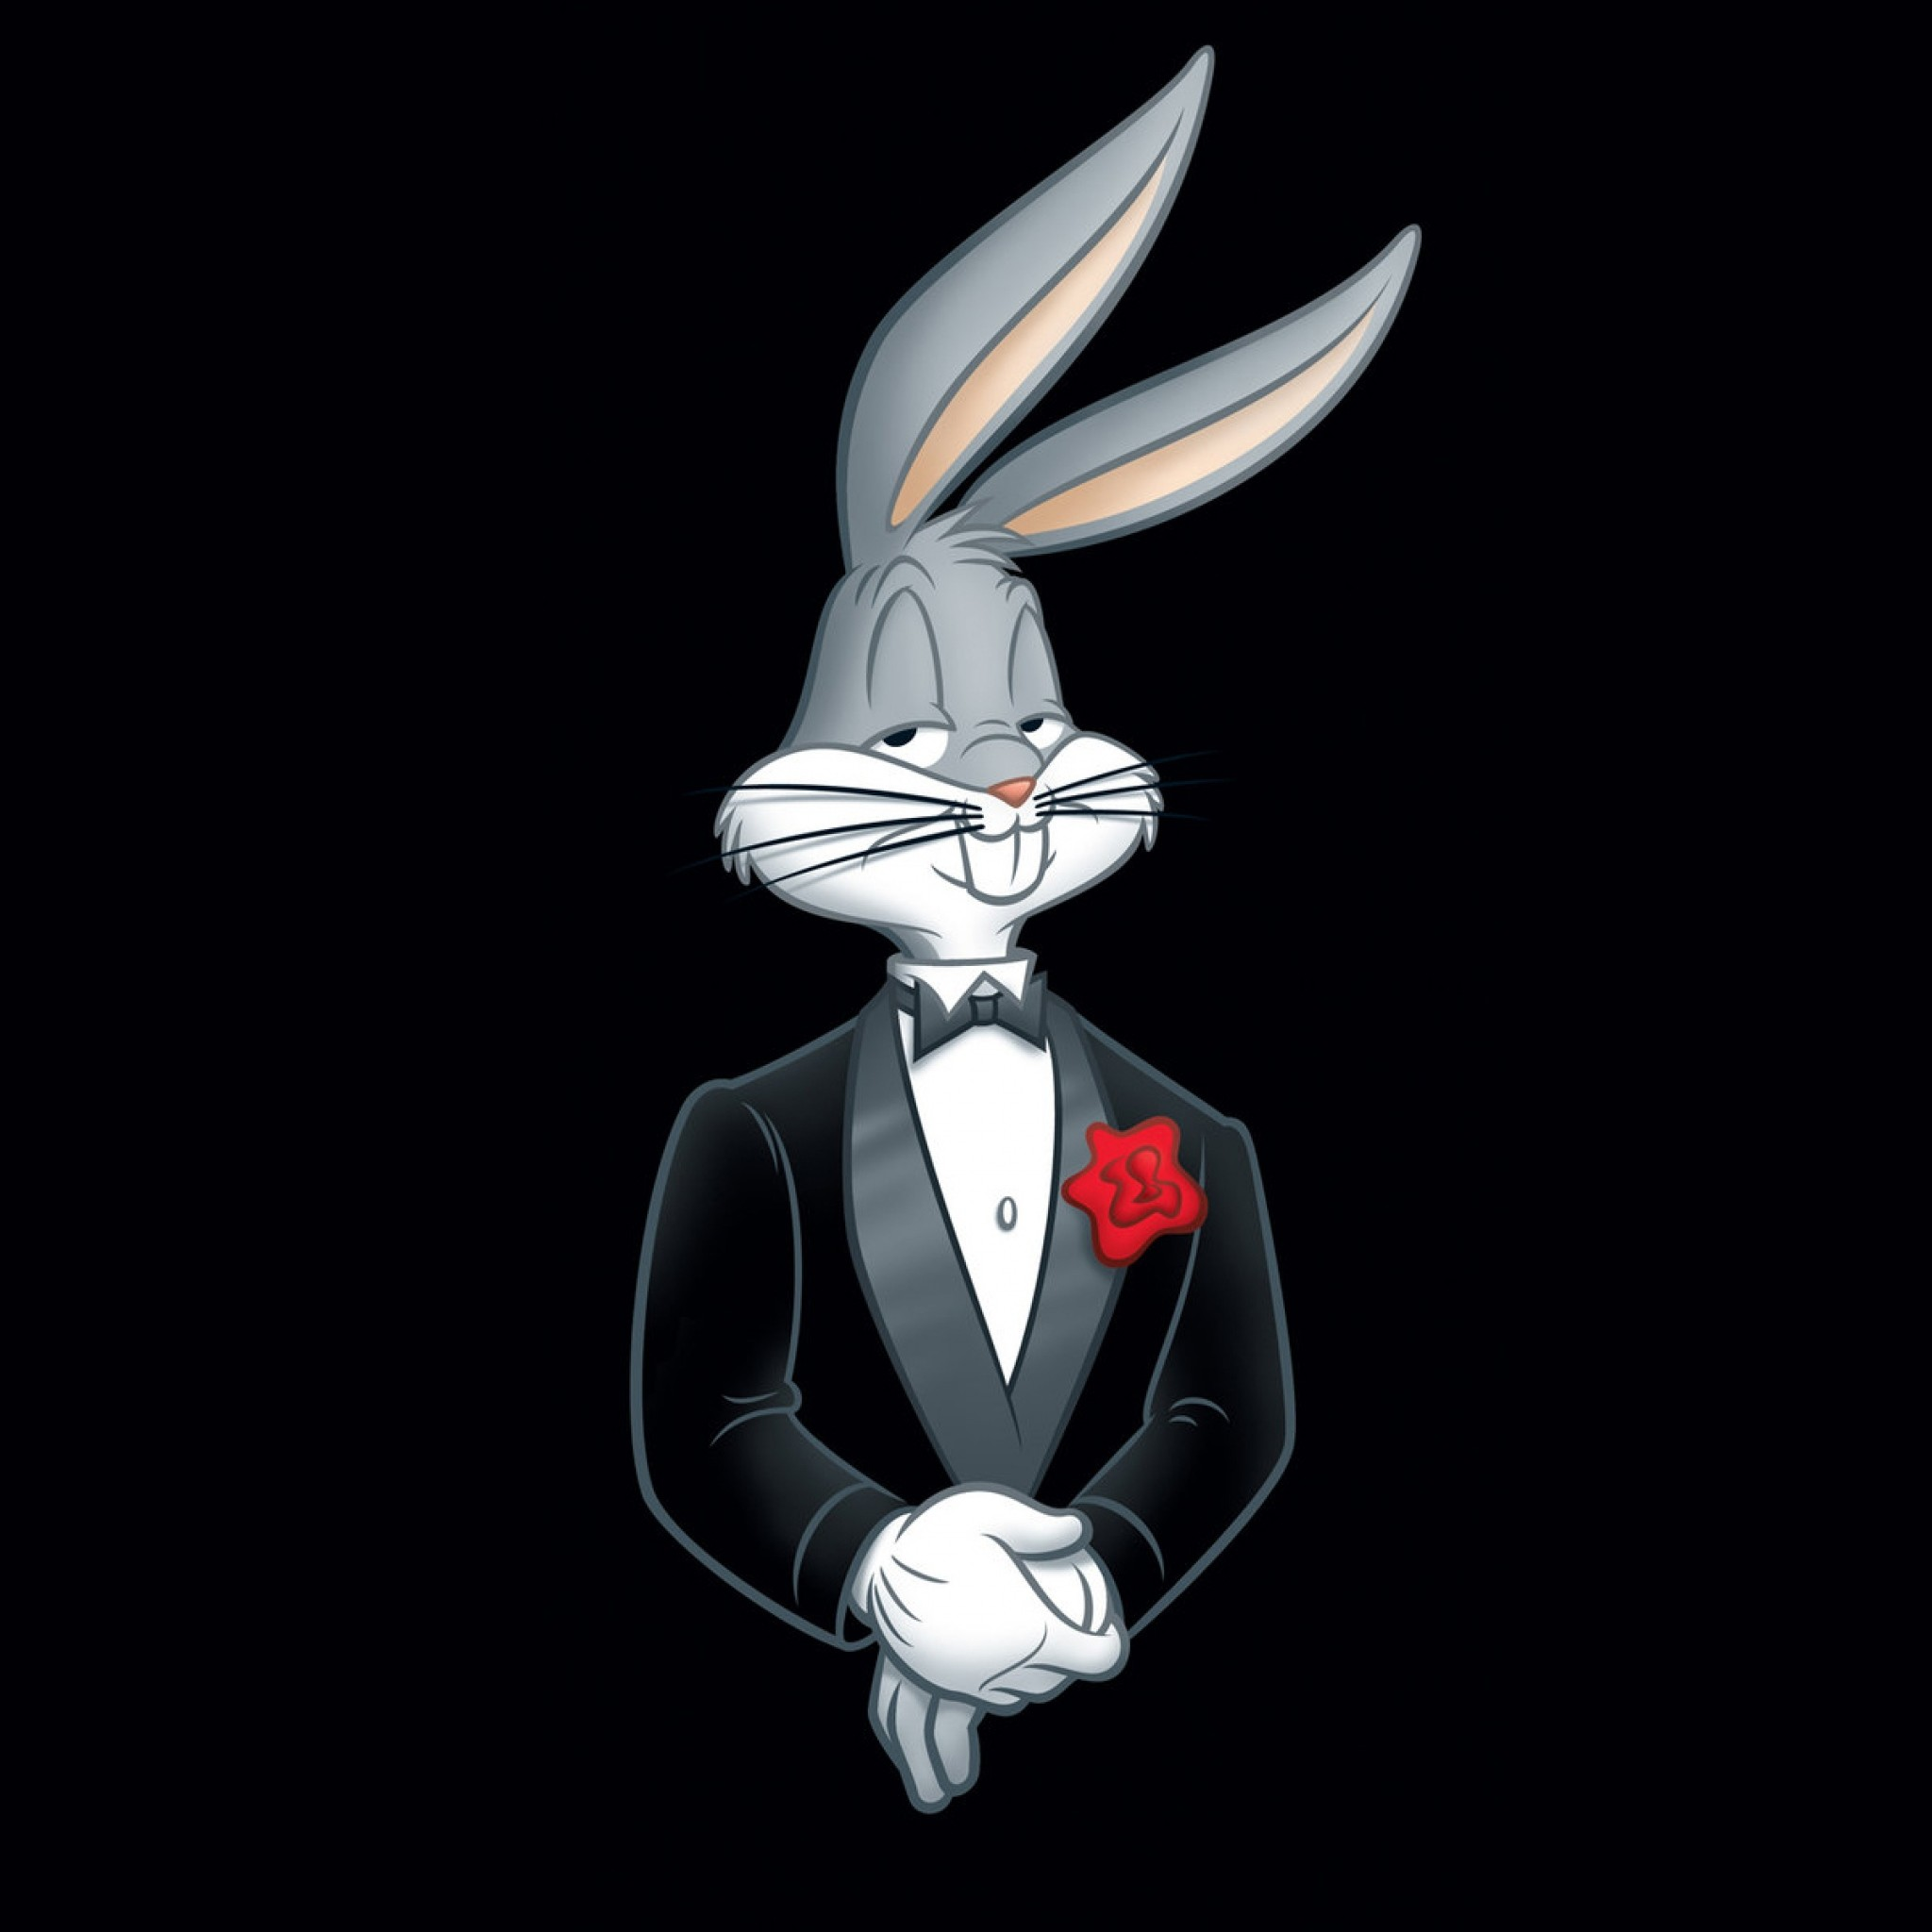 2048x2048 Looney tunes gangster wallpaper - photo#3